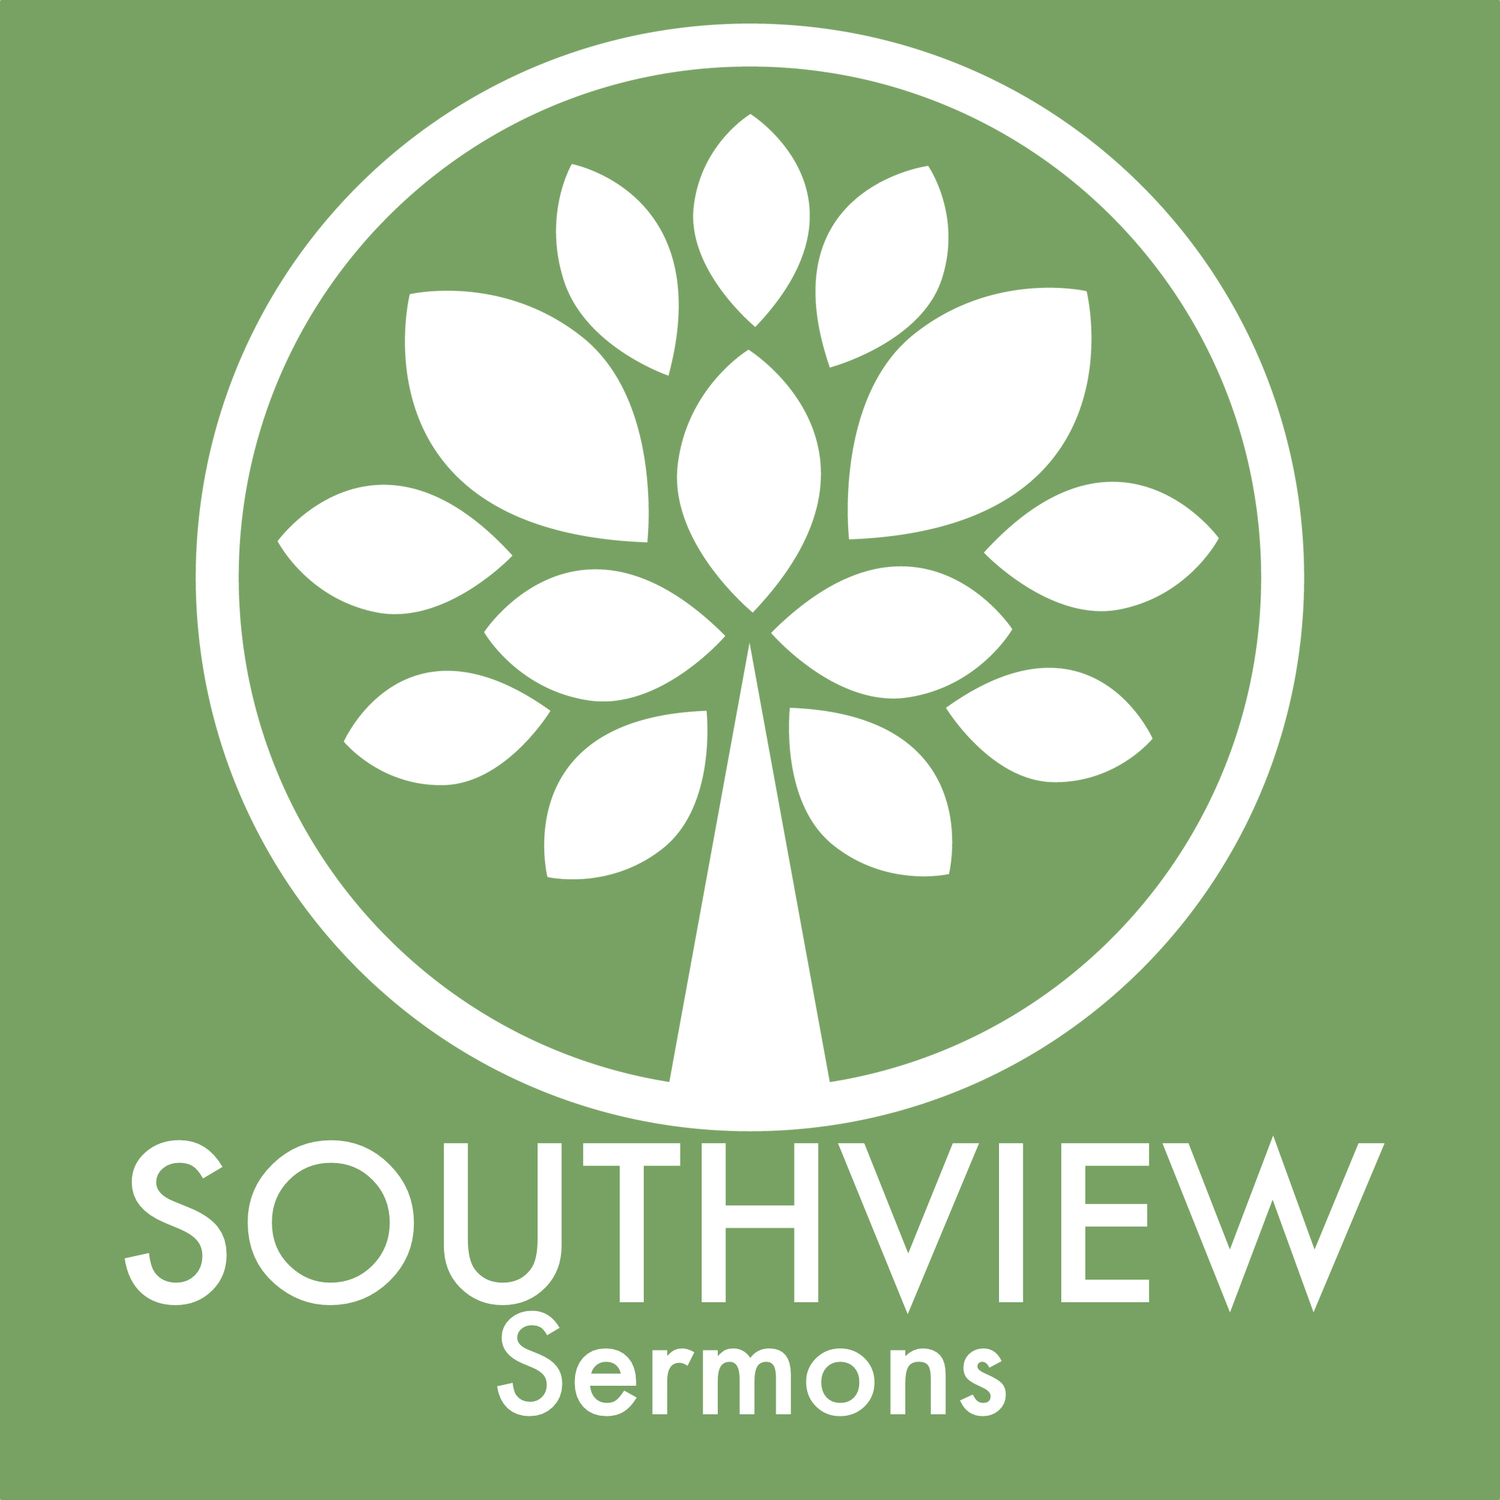 Southview Sermons - Southview Baptist Church